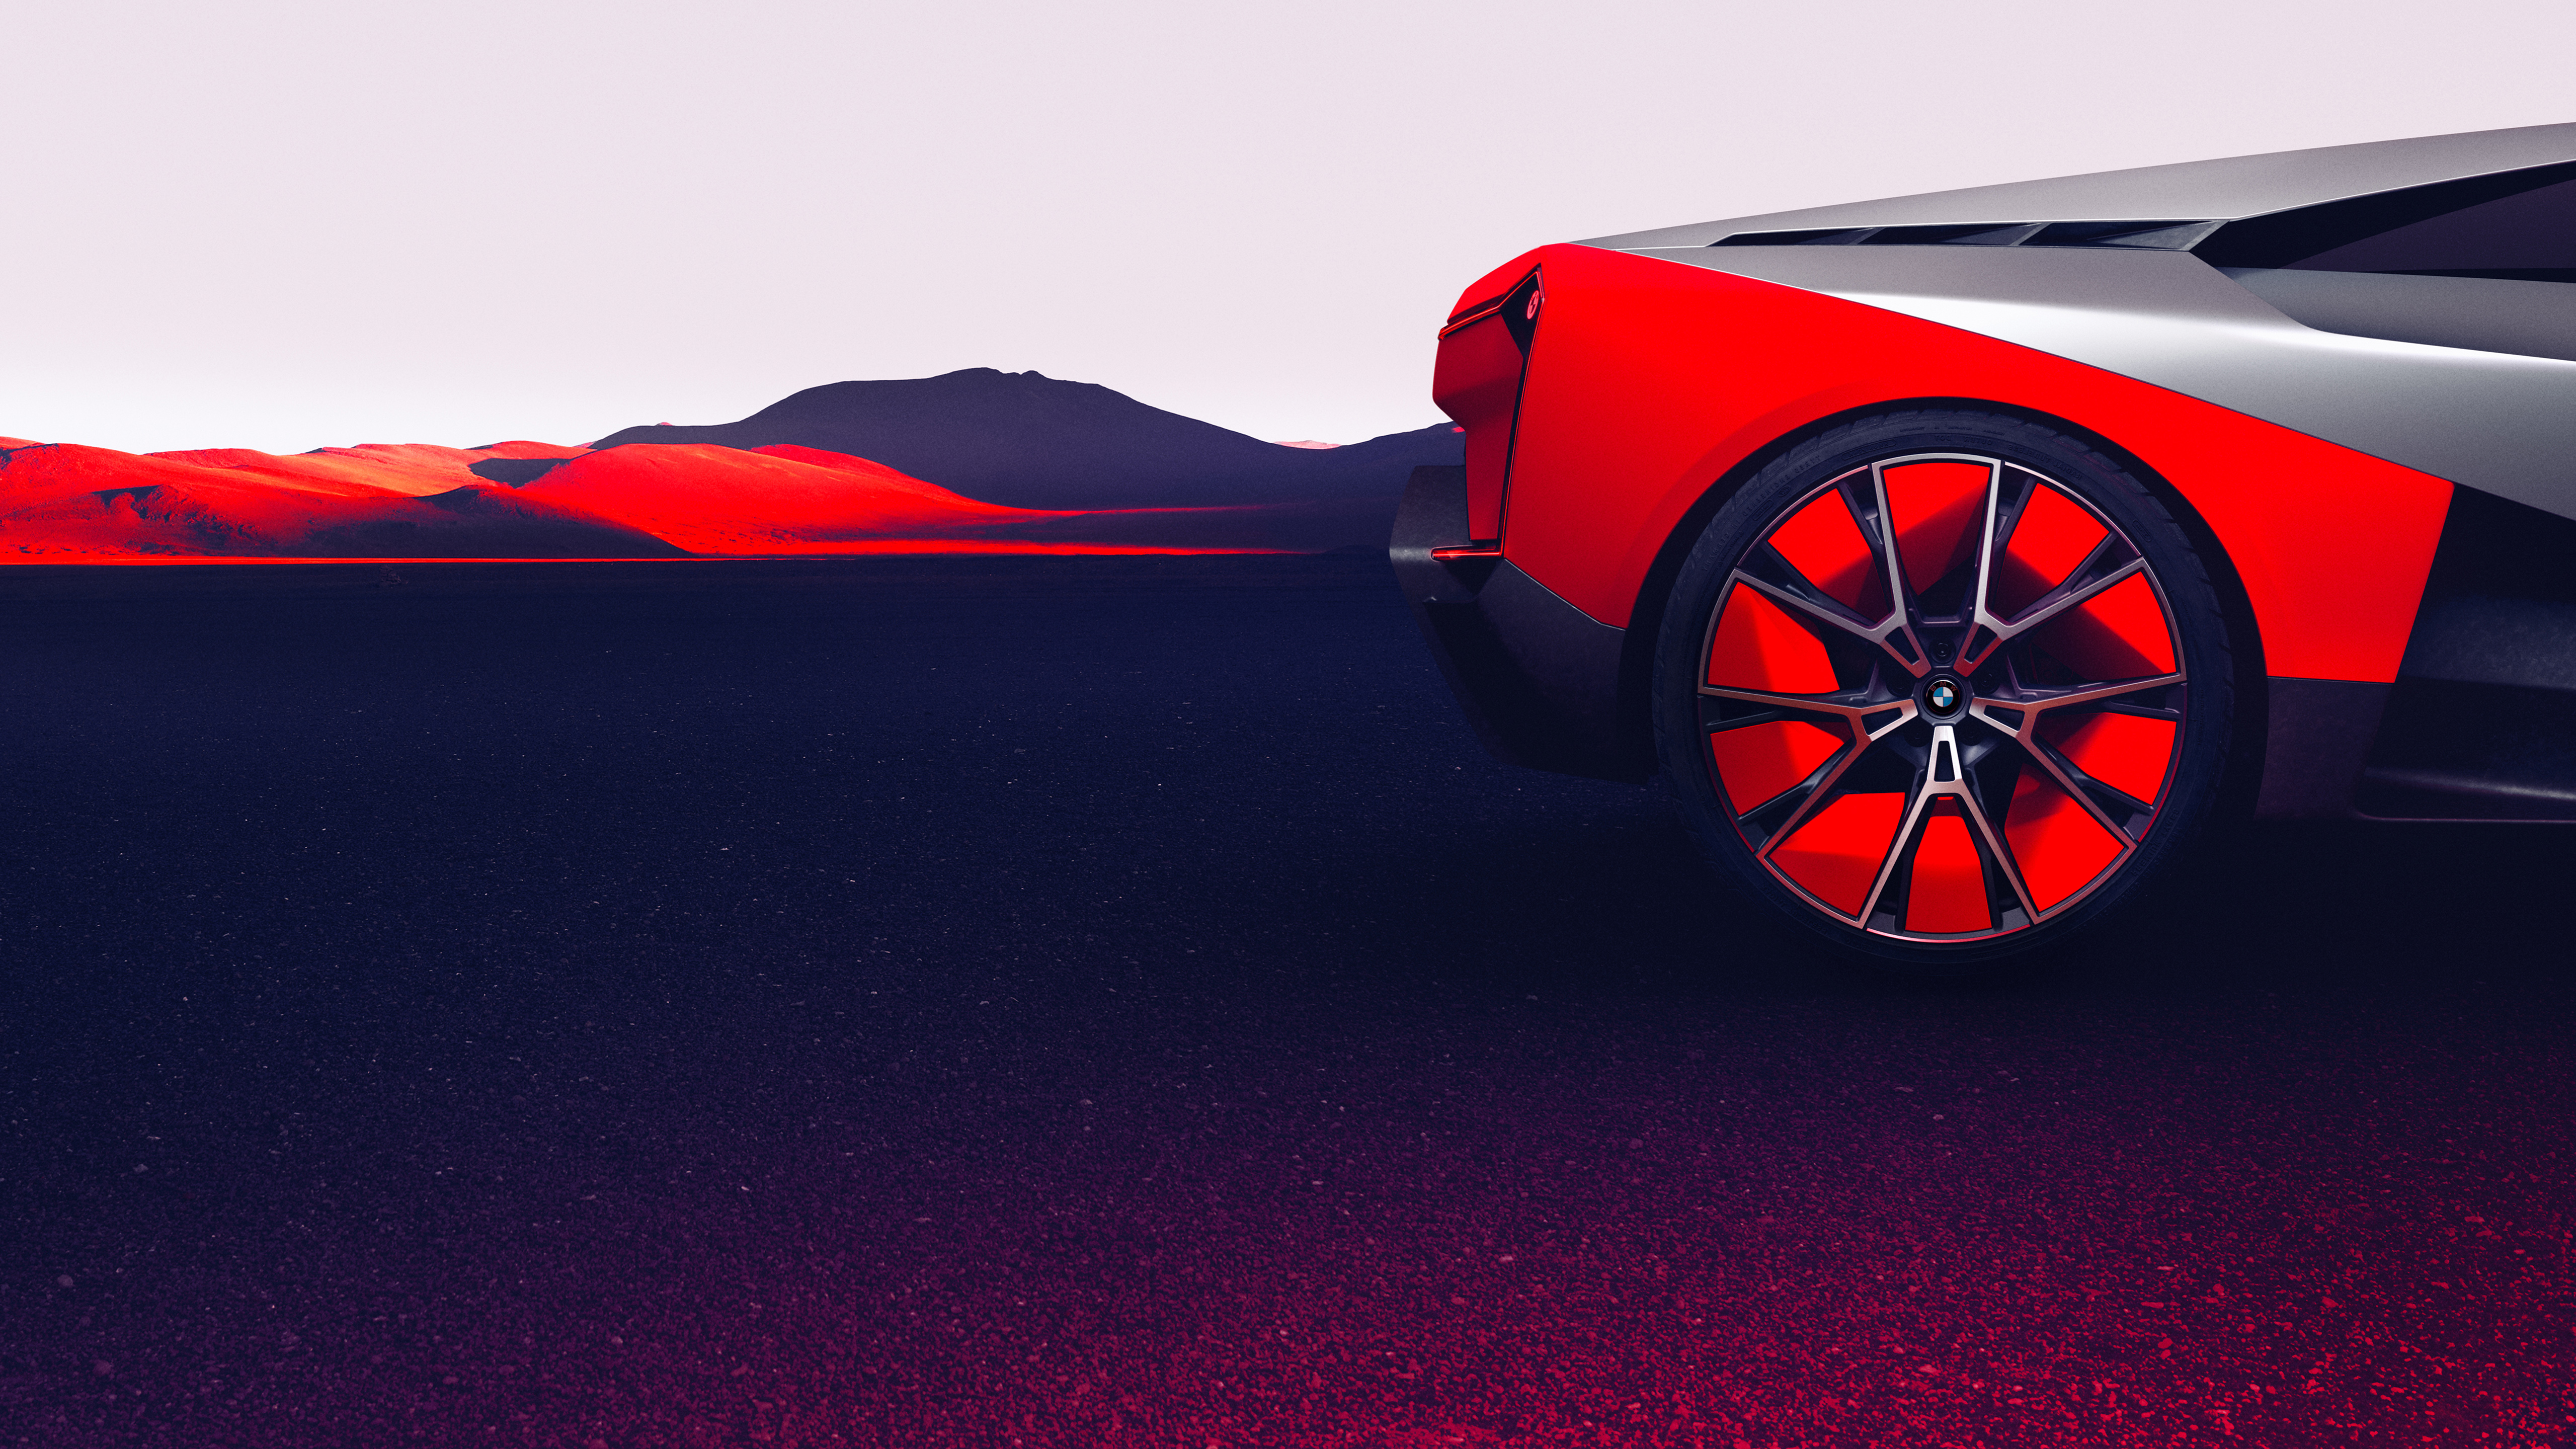 BMW Vision M NEXT 2019 4K 2 Wallpaper HD Car Wallpapers ID 12812 5120x2880